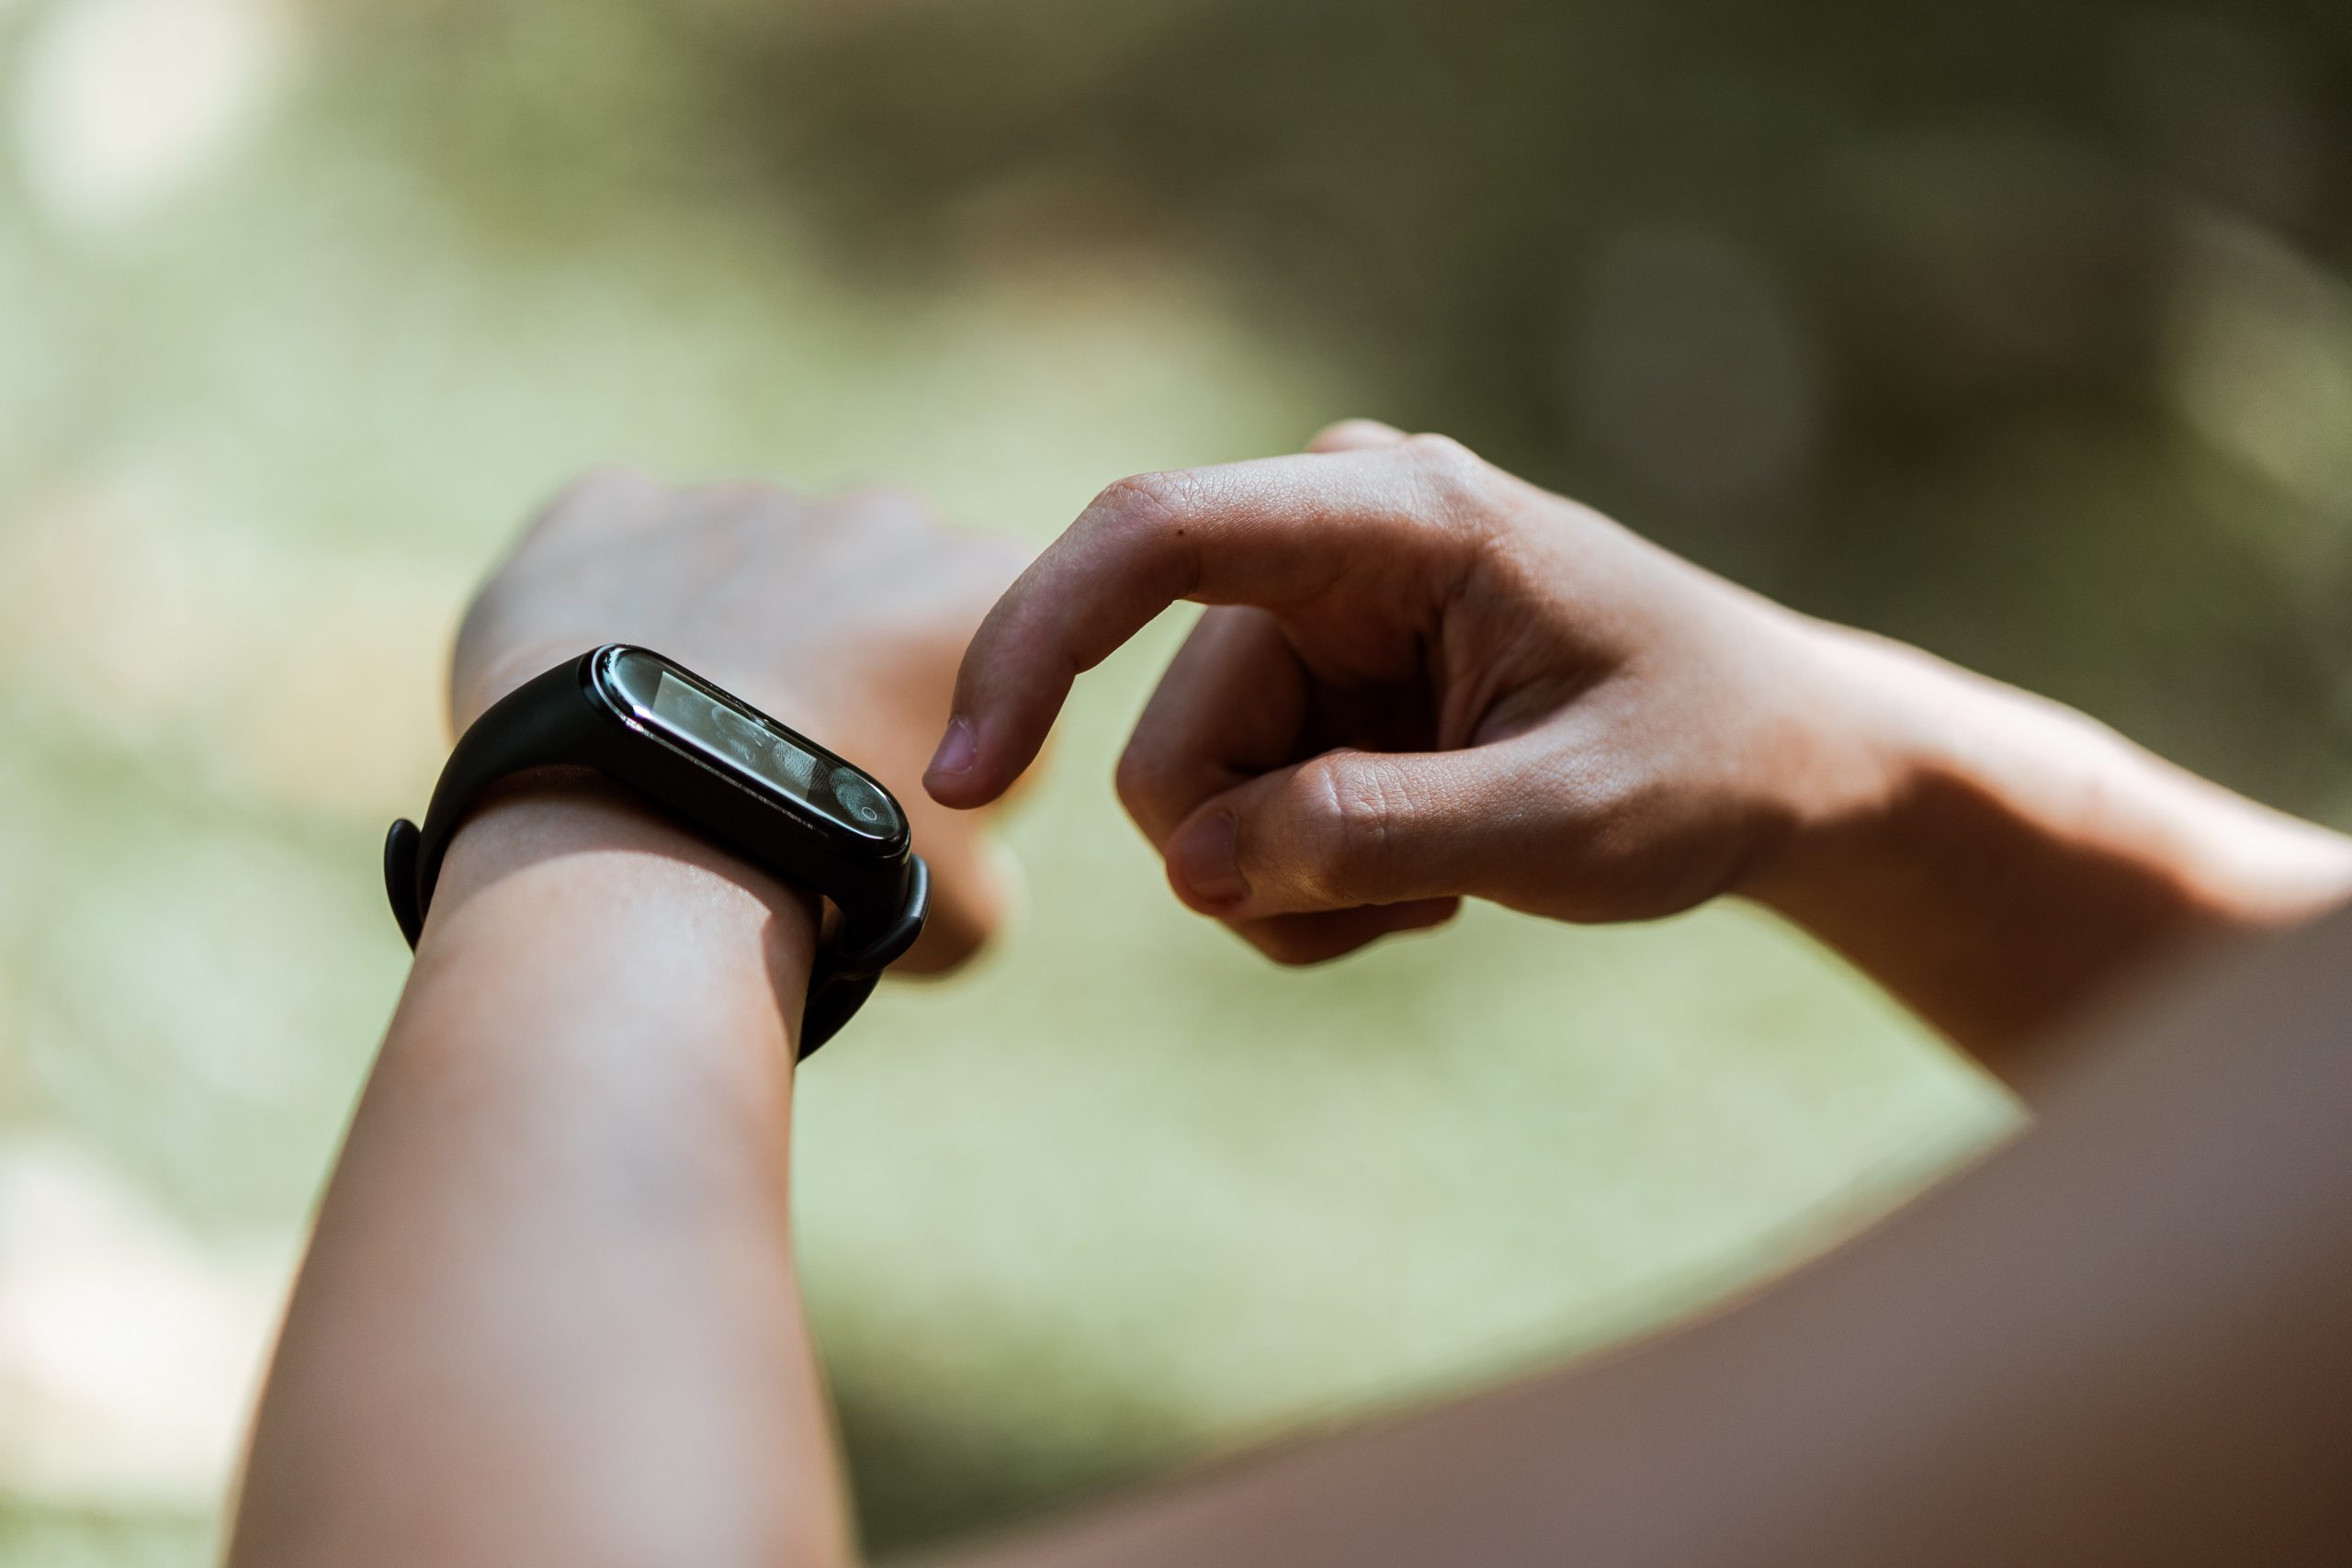 A particular example of wearables, a smartwatch